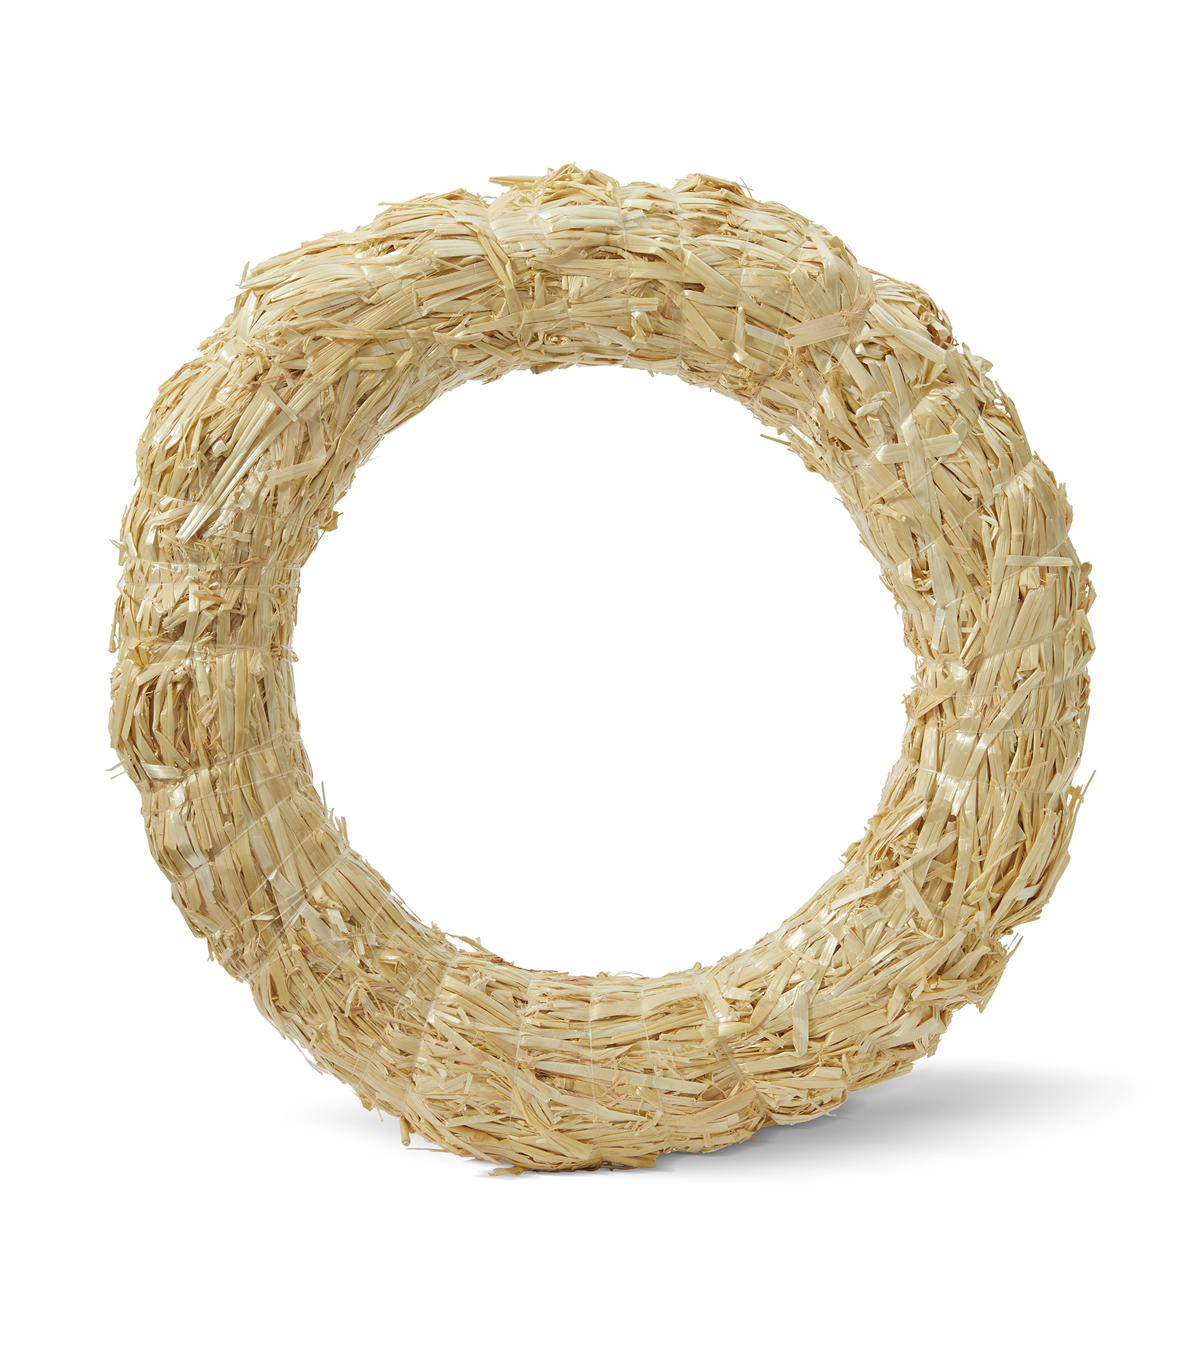 Floracraft Straw Wreath 14\u0022